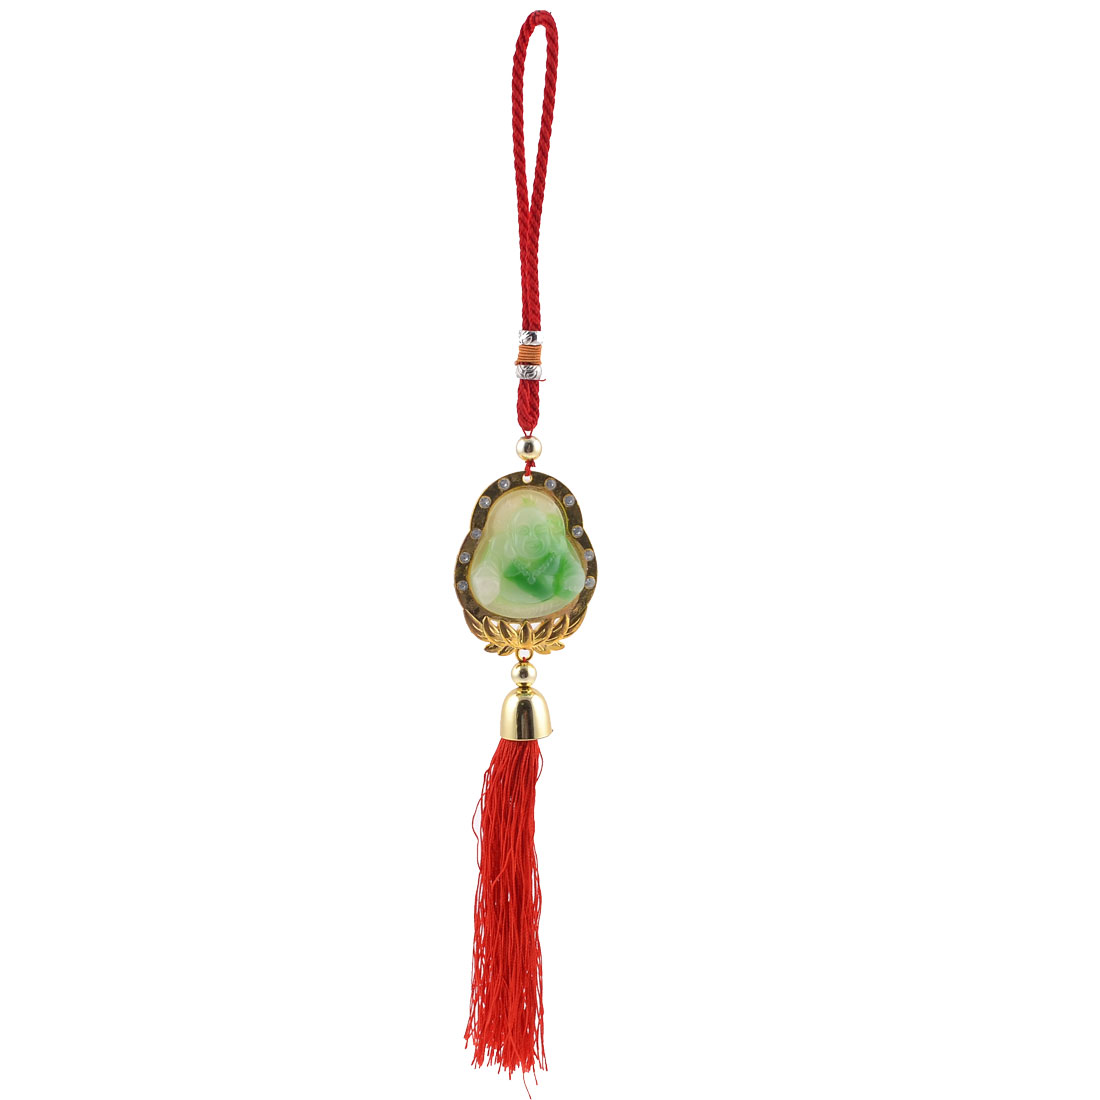 Chinese Knot Oriental Ornament Buddha Faux Jade Hang Pendant